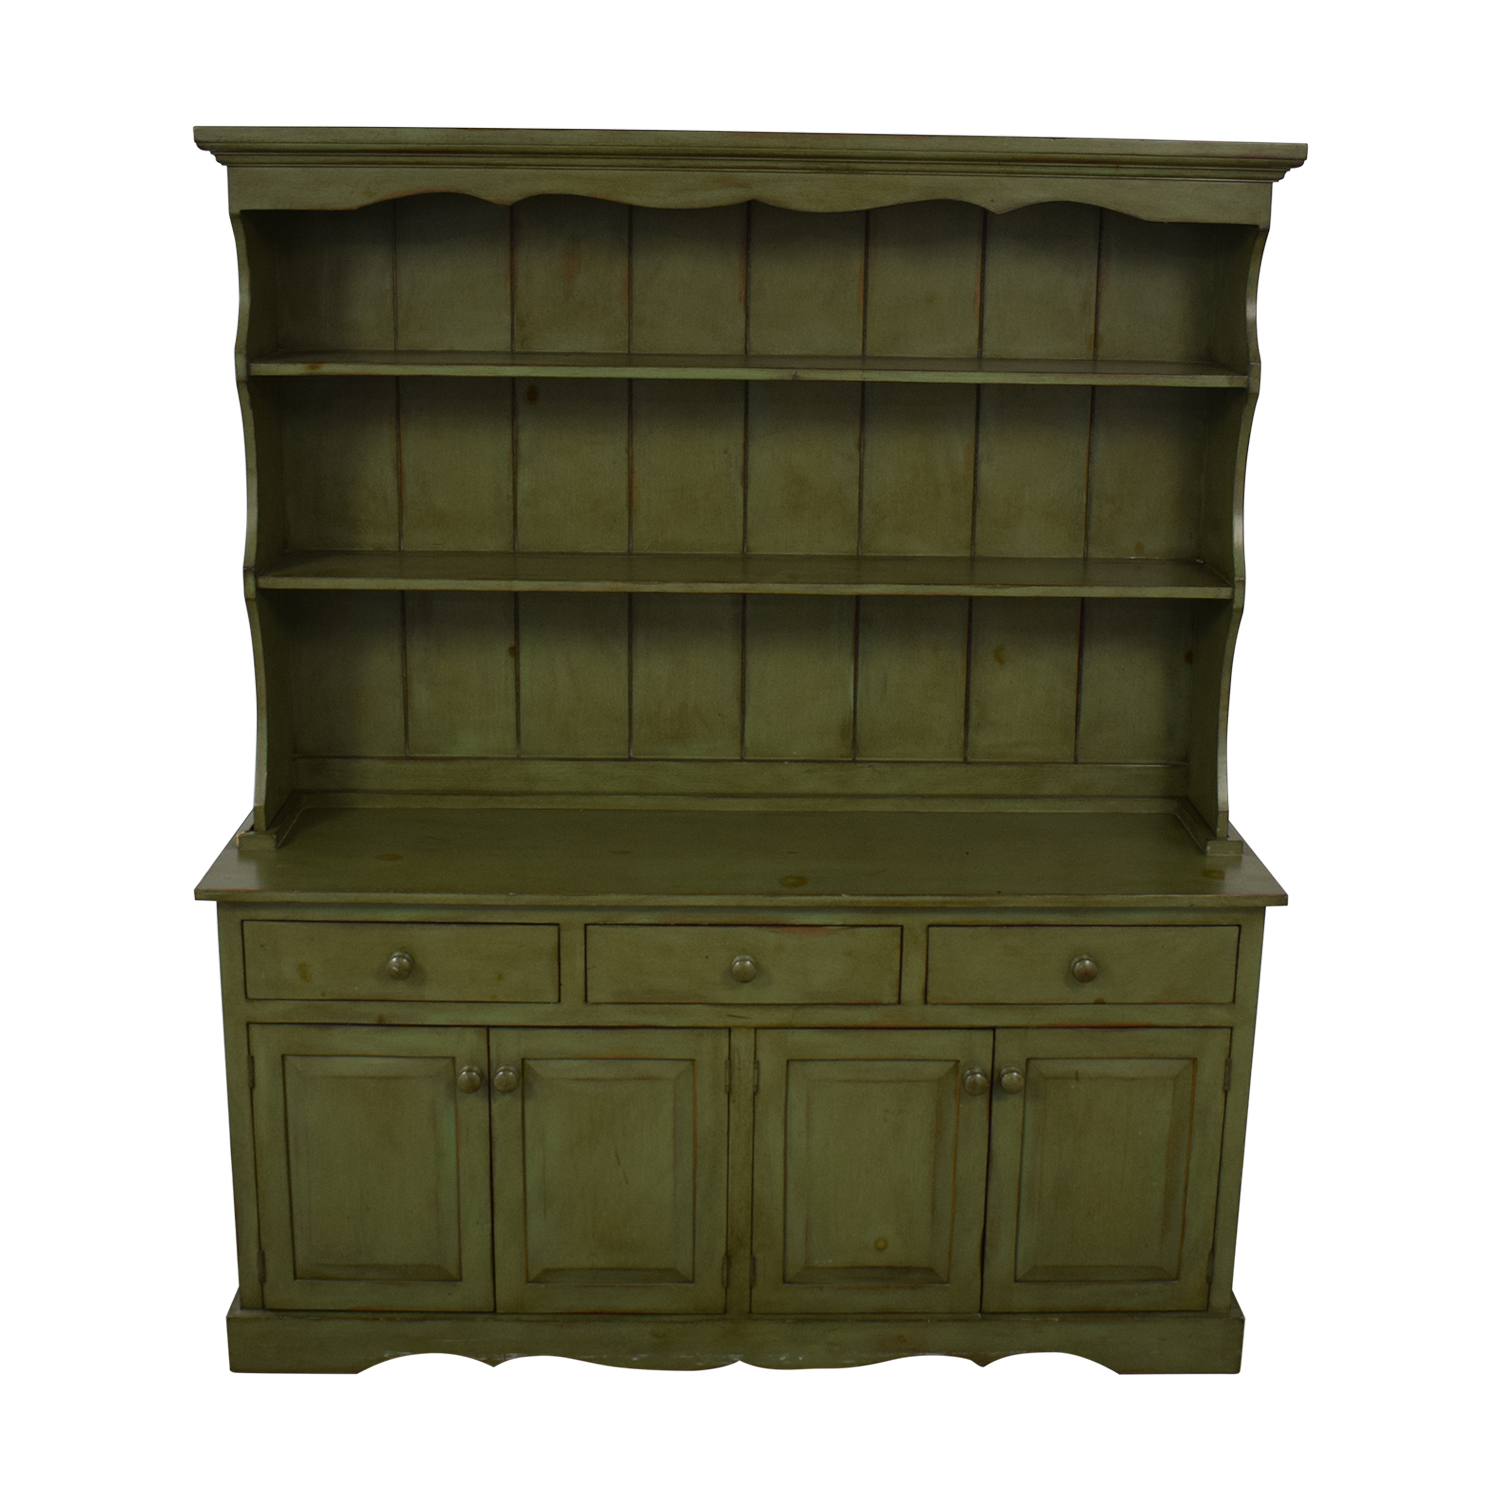 Ethan Allen Ethan Allen Cabinet and Hutch second hand